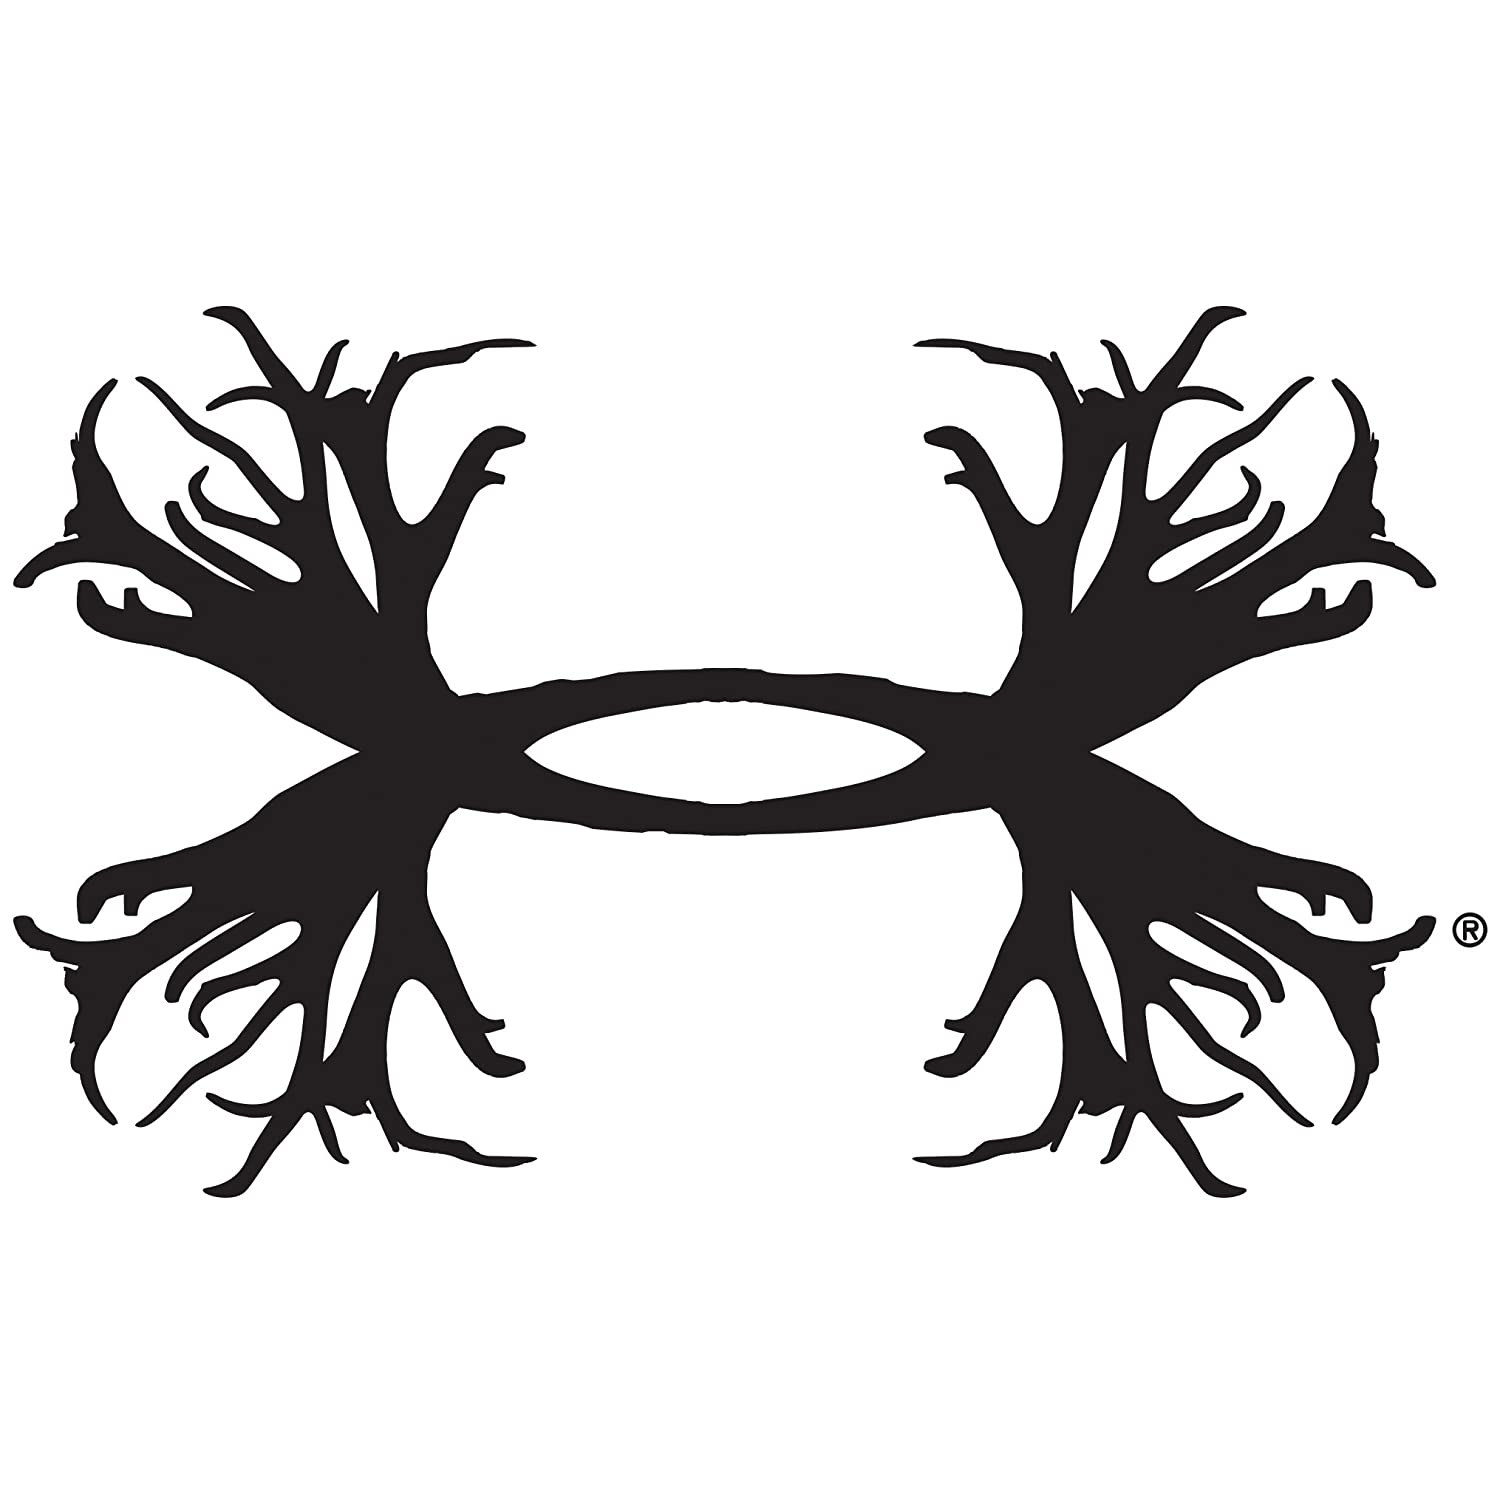 56eb338ae Amazon.com: Under Armour UA Big Antler Logo Decal - 15 Inch One Size Fits  All White: Automotive